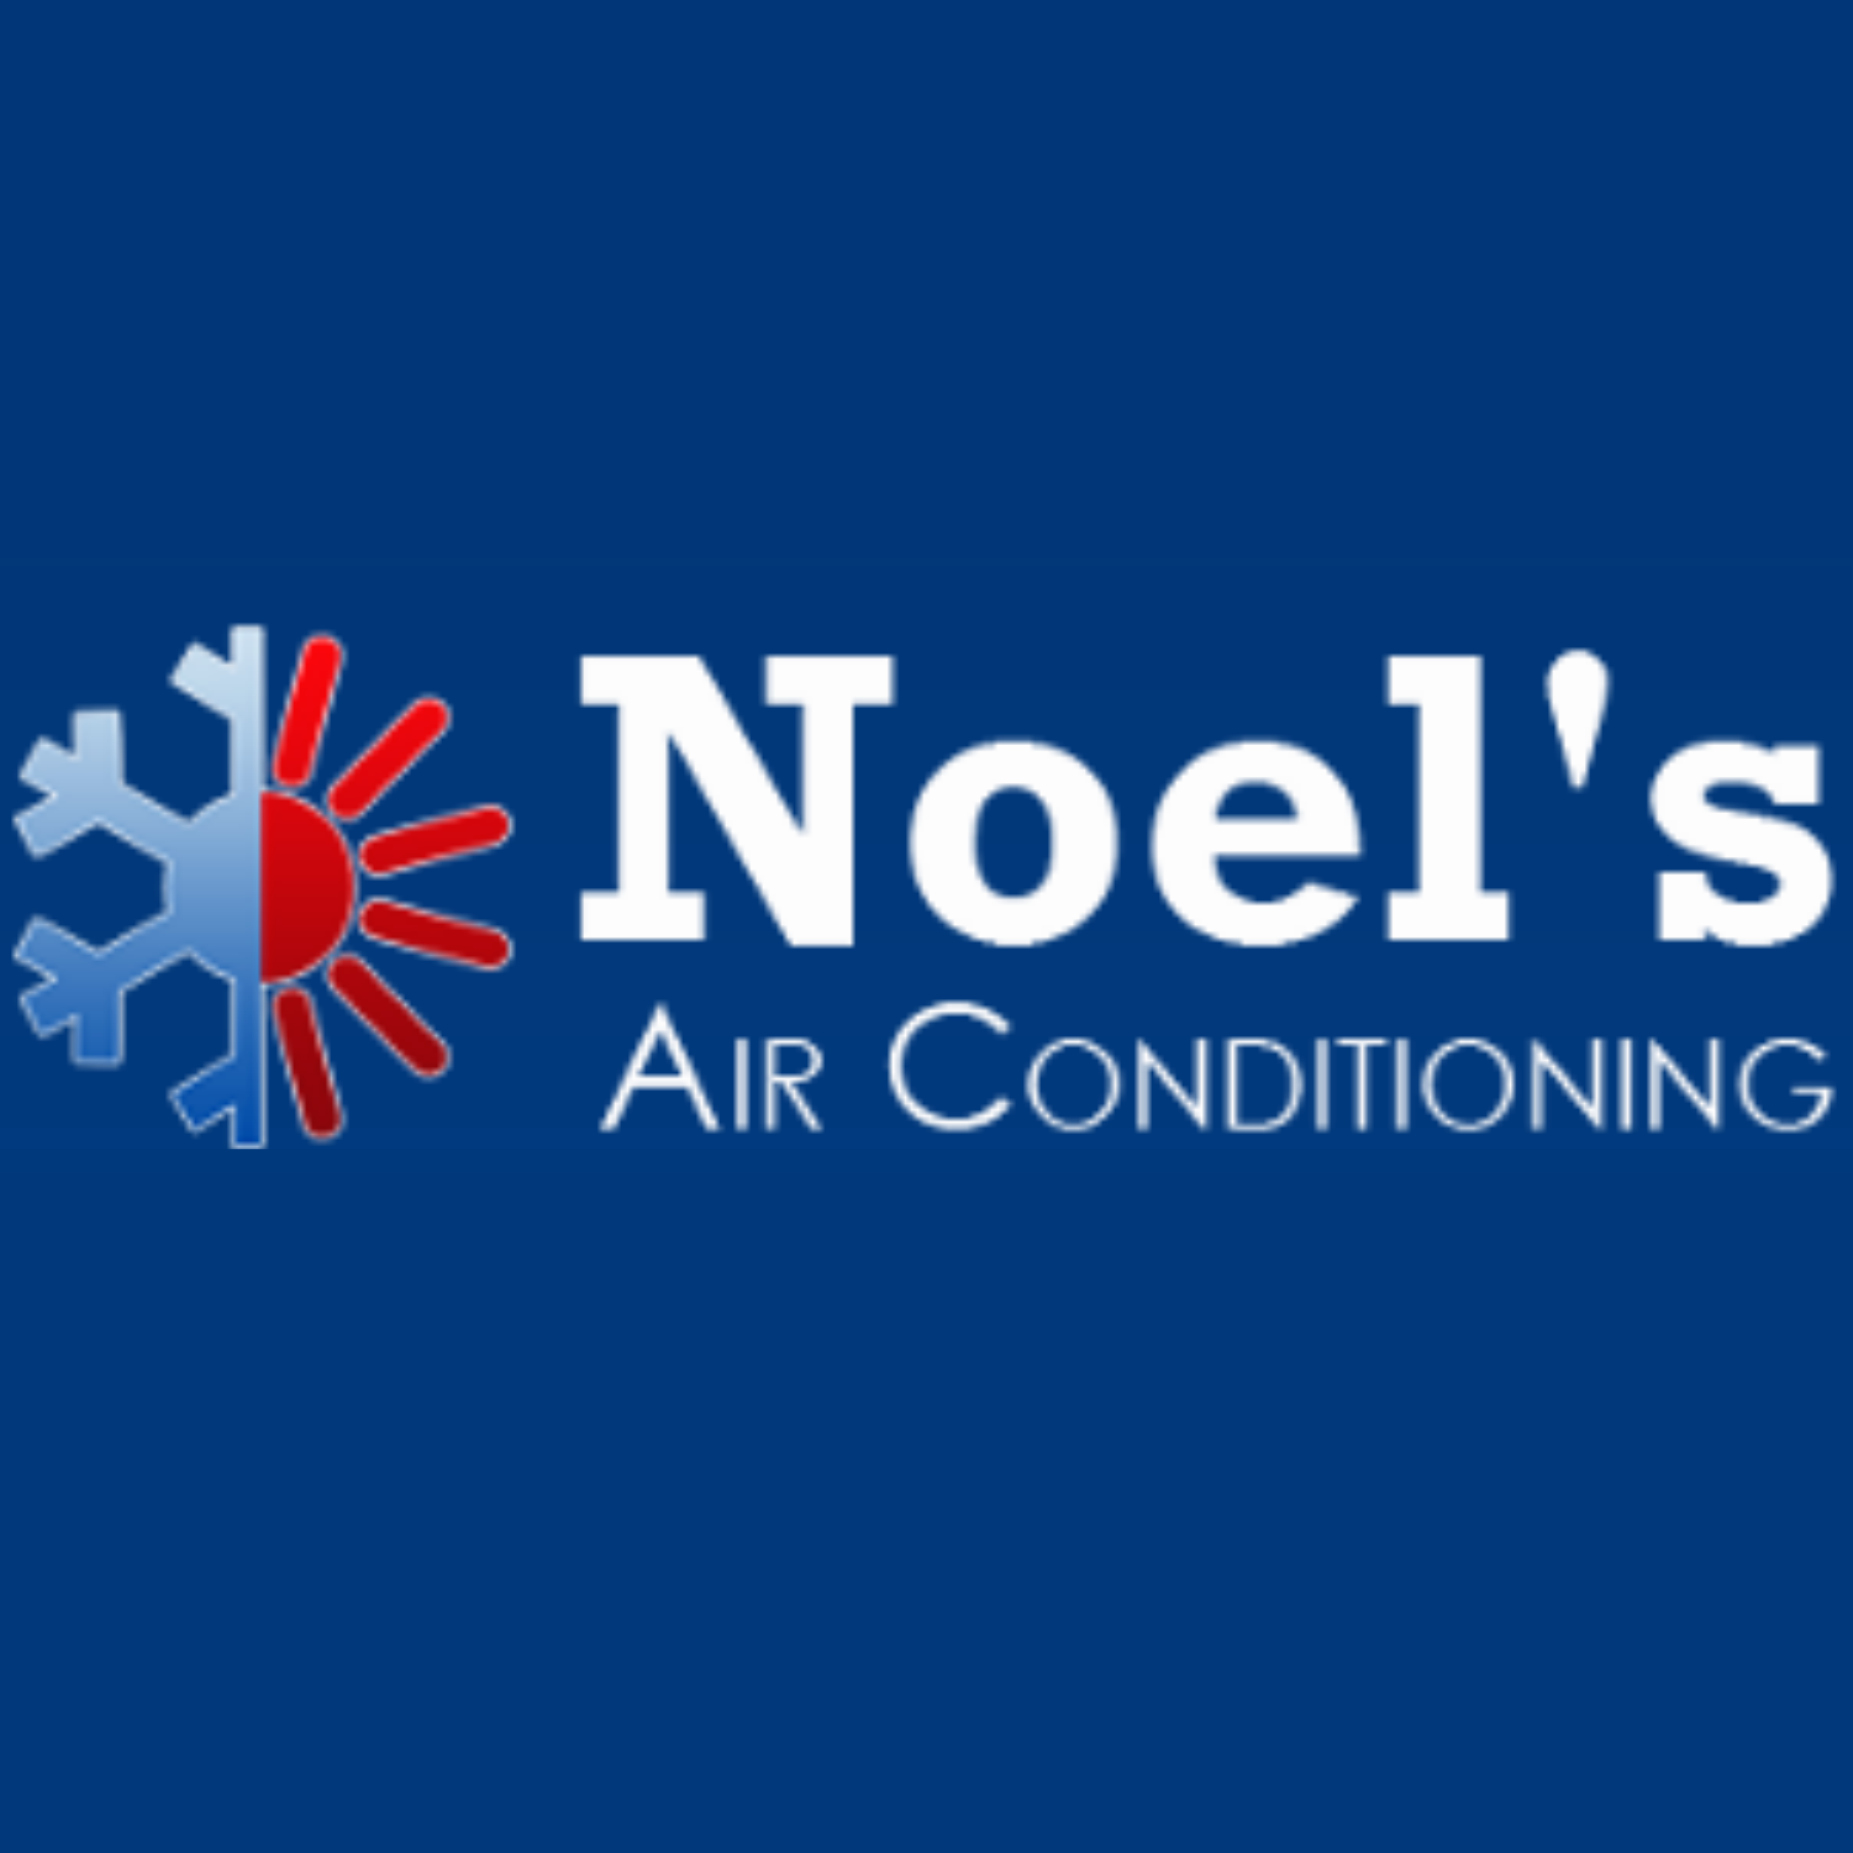 Noel's Air Conditioning - Middle Village, NY - Heating & Air Conditioning